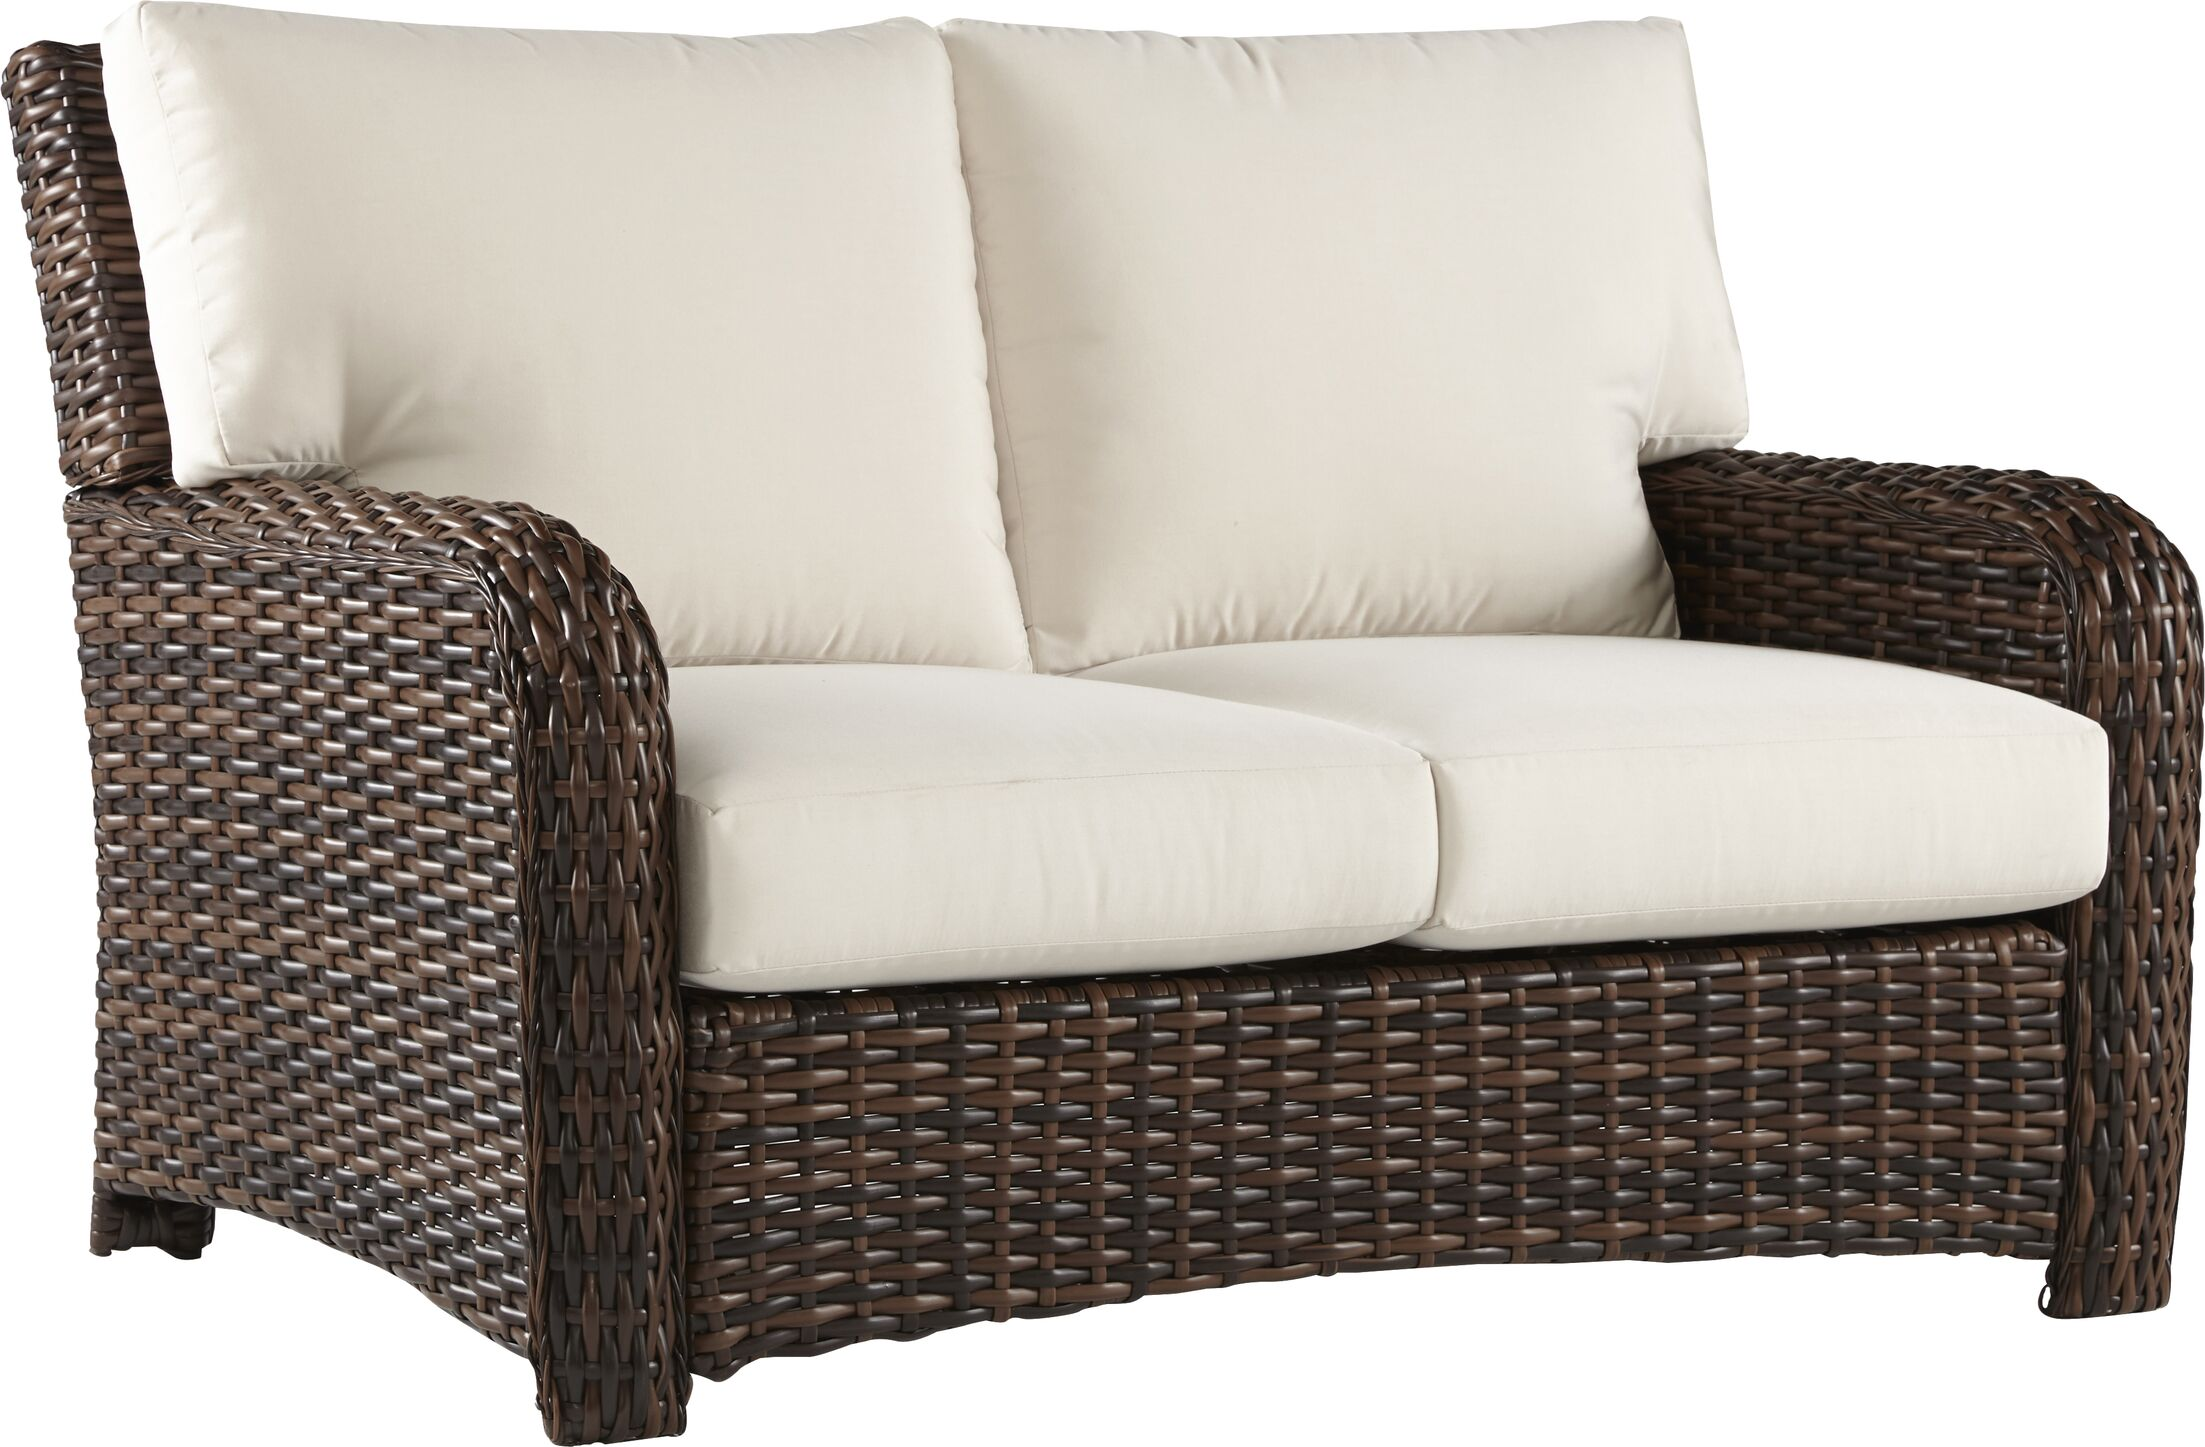 Chorio Loveseat with Cushions Cushion Color: Cayenne, Frame Color: Espresso